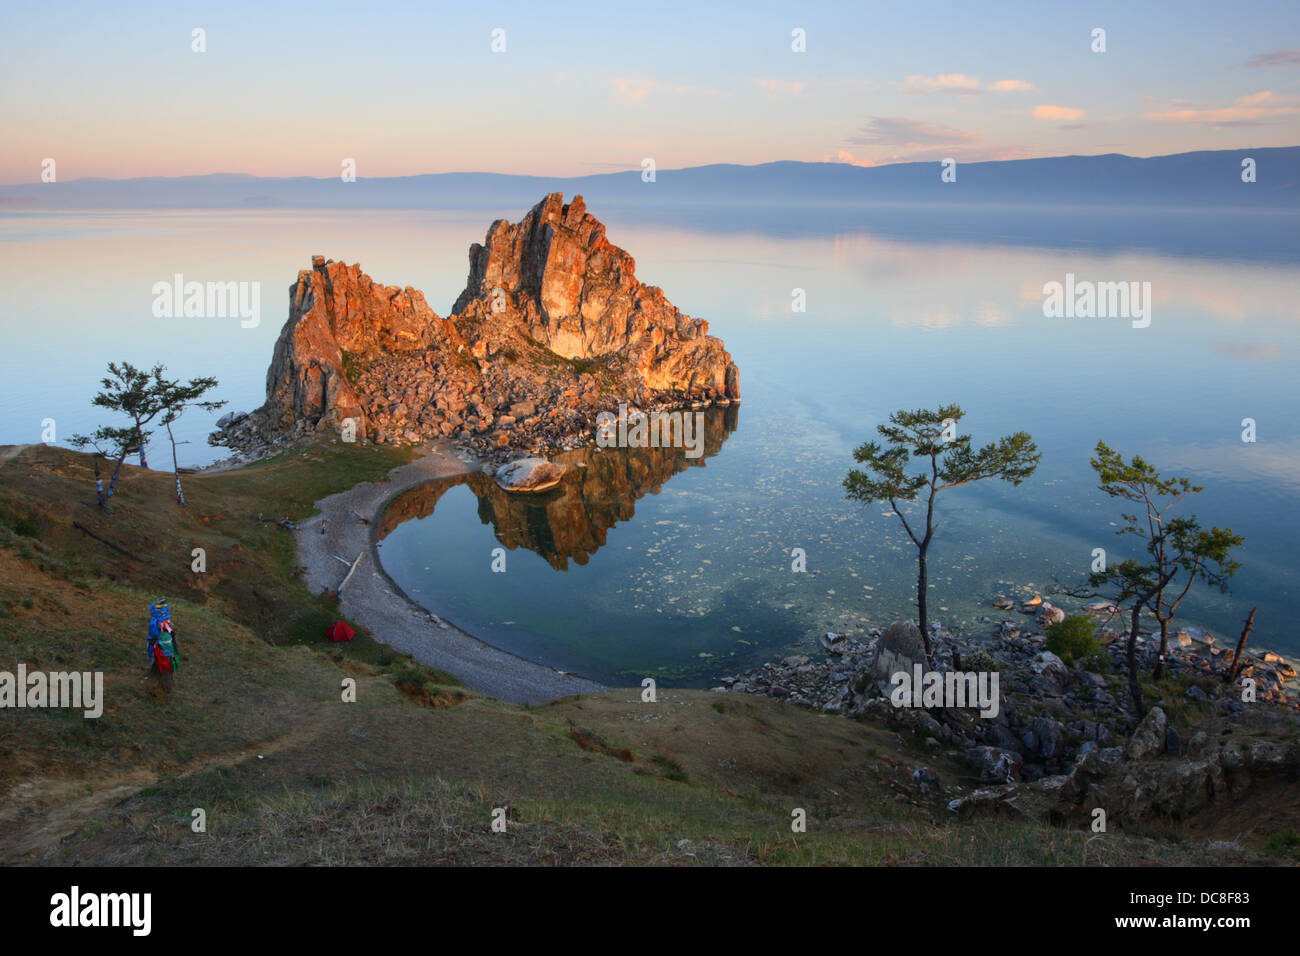 Mountain 'Shamanka', Burkhan Cape, one of the nine most sacred places in Asia on Olkhon Island on Lake Baikal - Stock Image